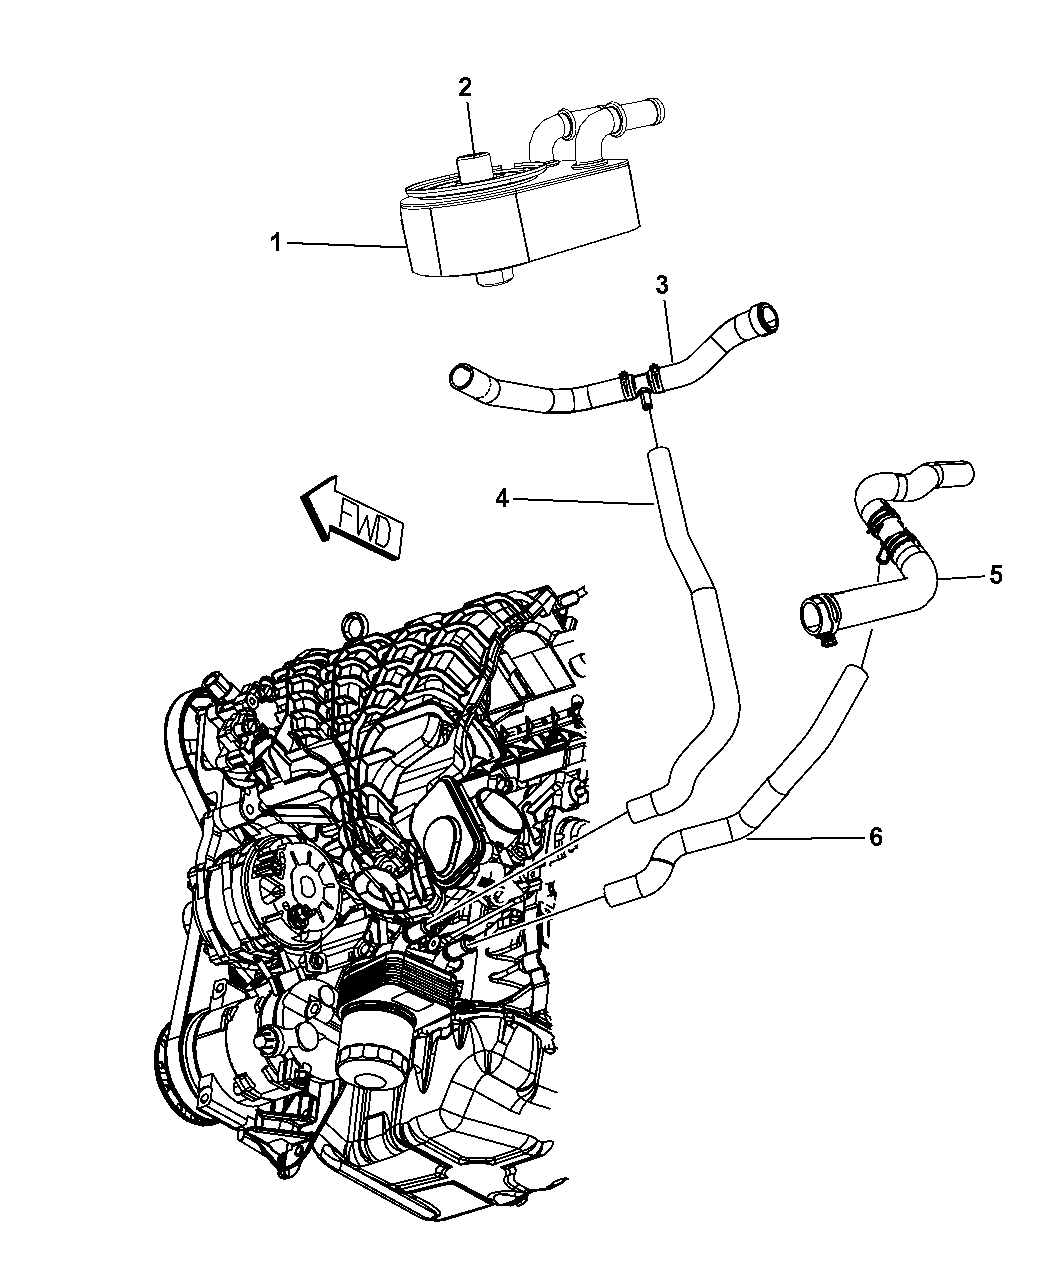 Wiring Diagram Database: 2010 Dodge Journey Heater Hose